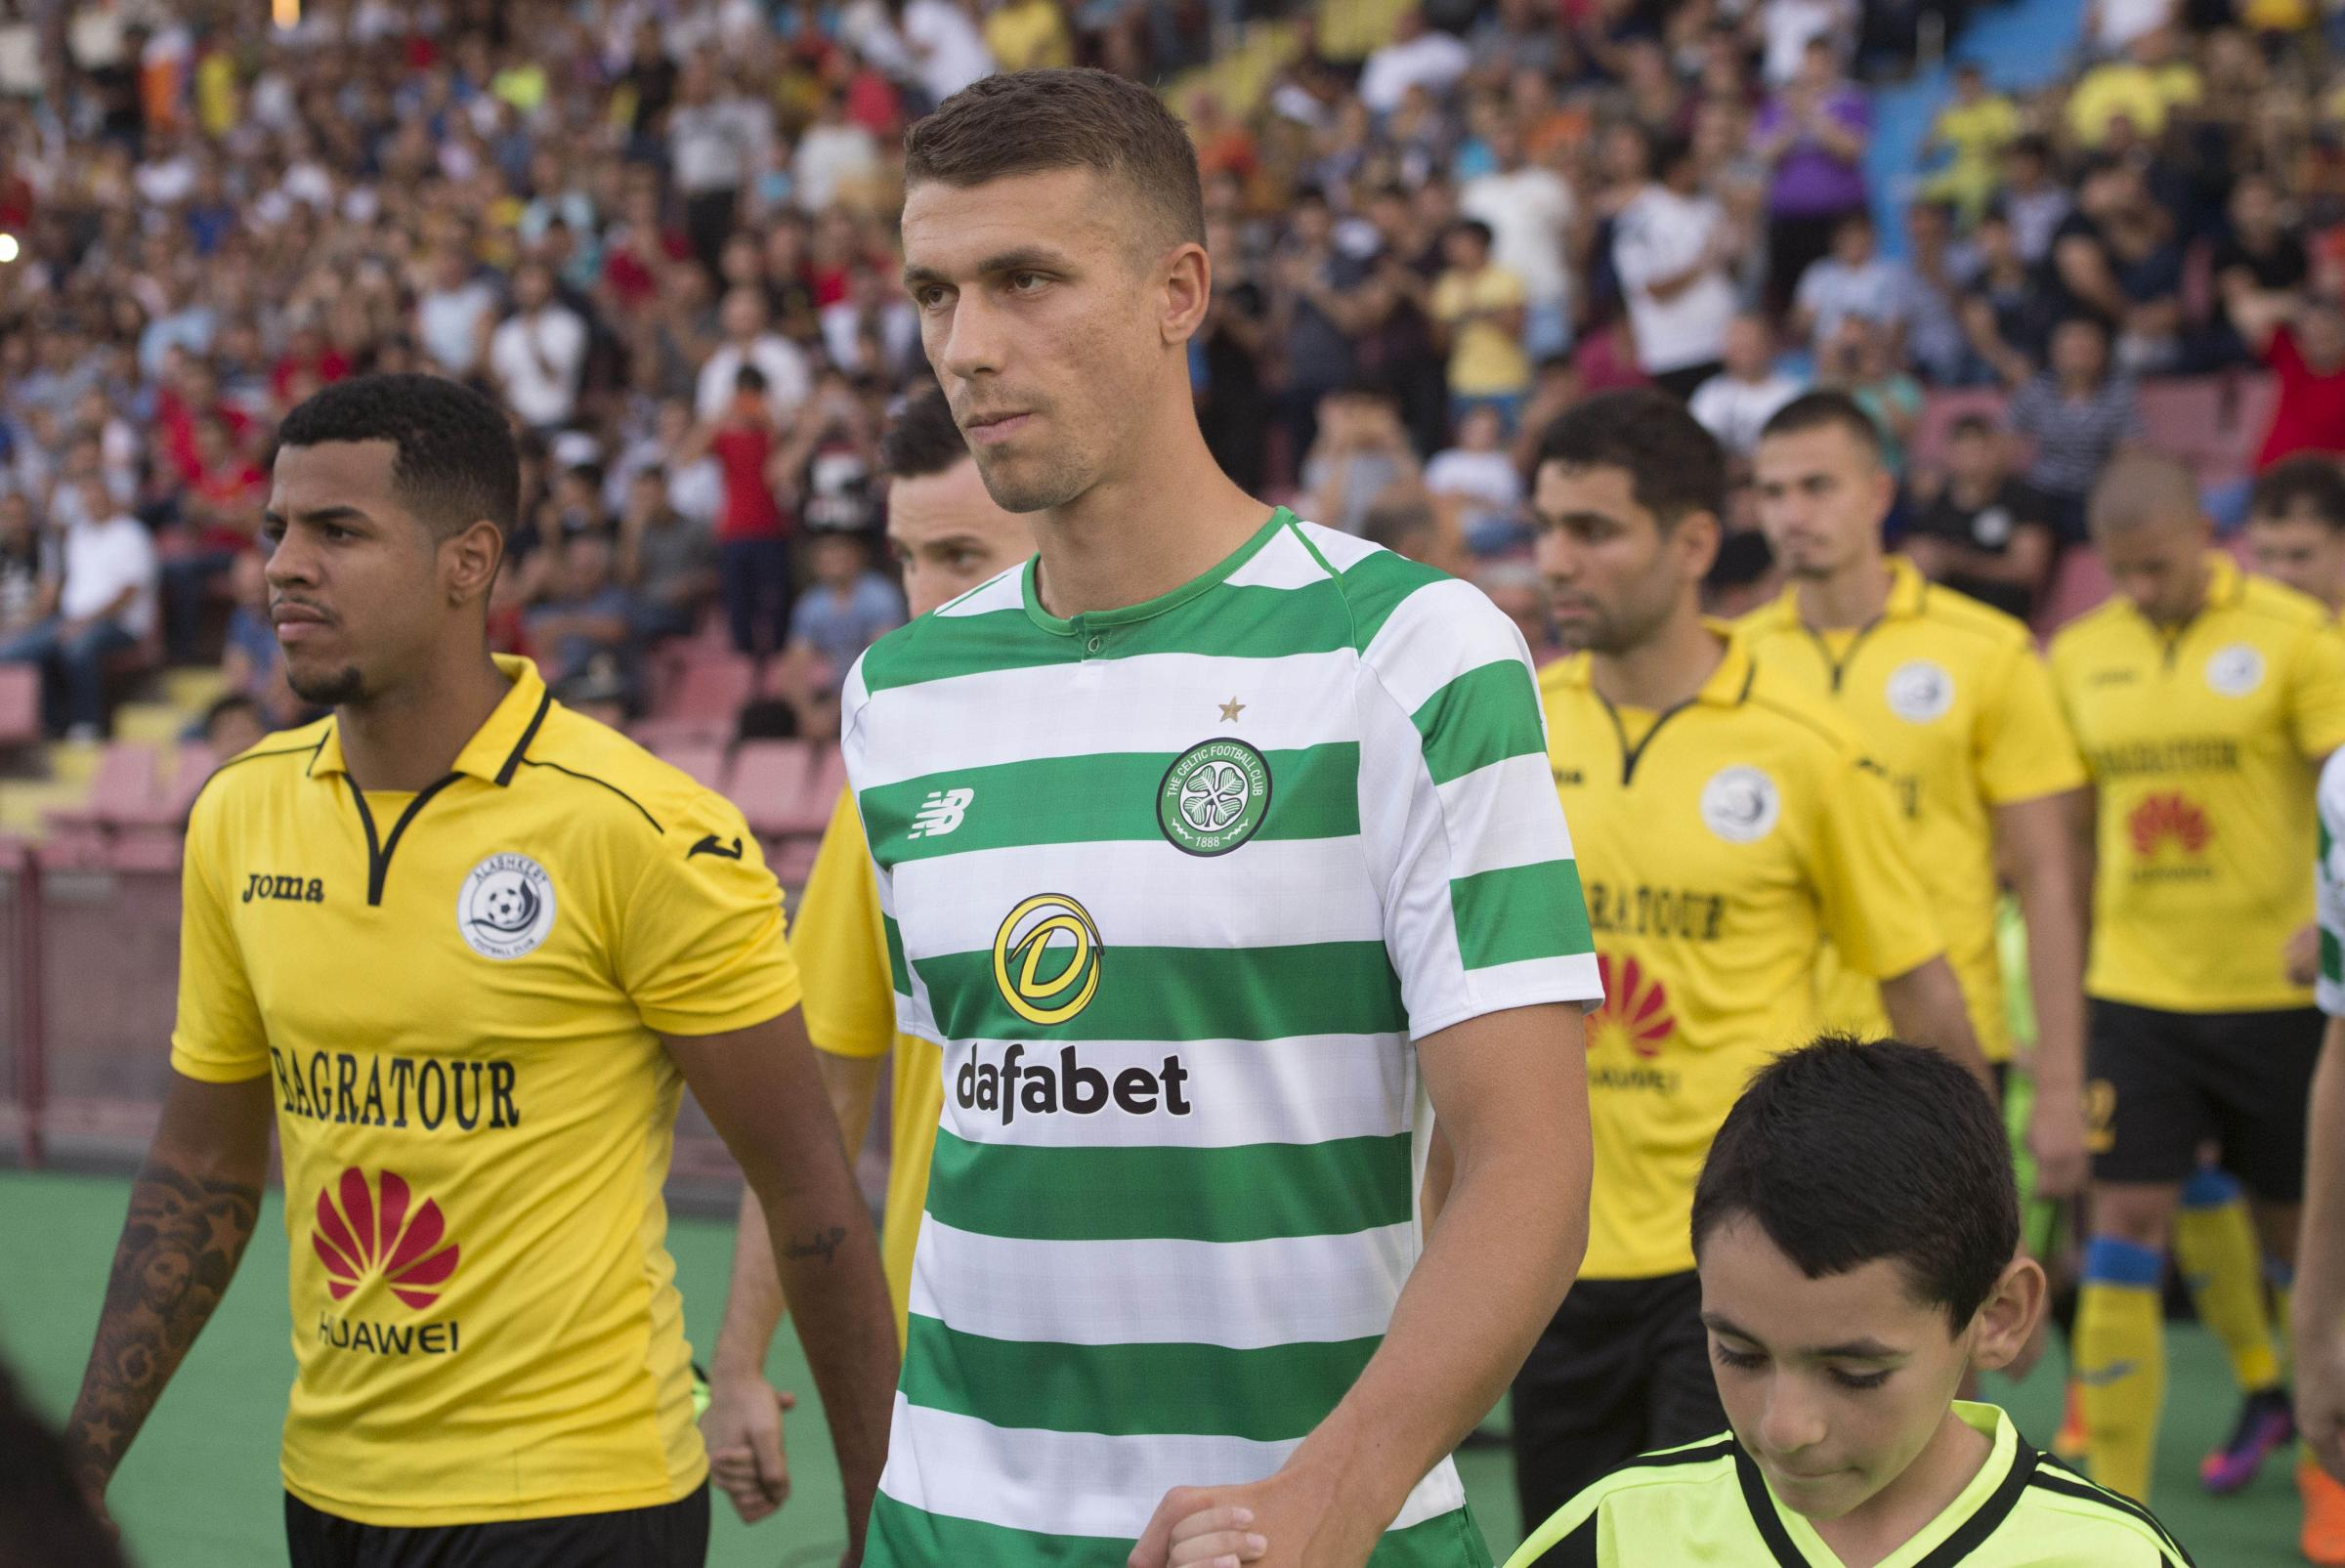 Jozo Simunovic backed Osdonne Edouard and Moussa Dembele to form a killer partnership